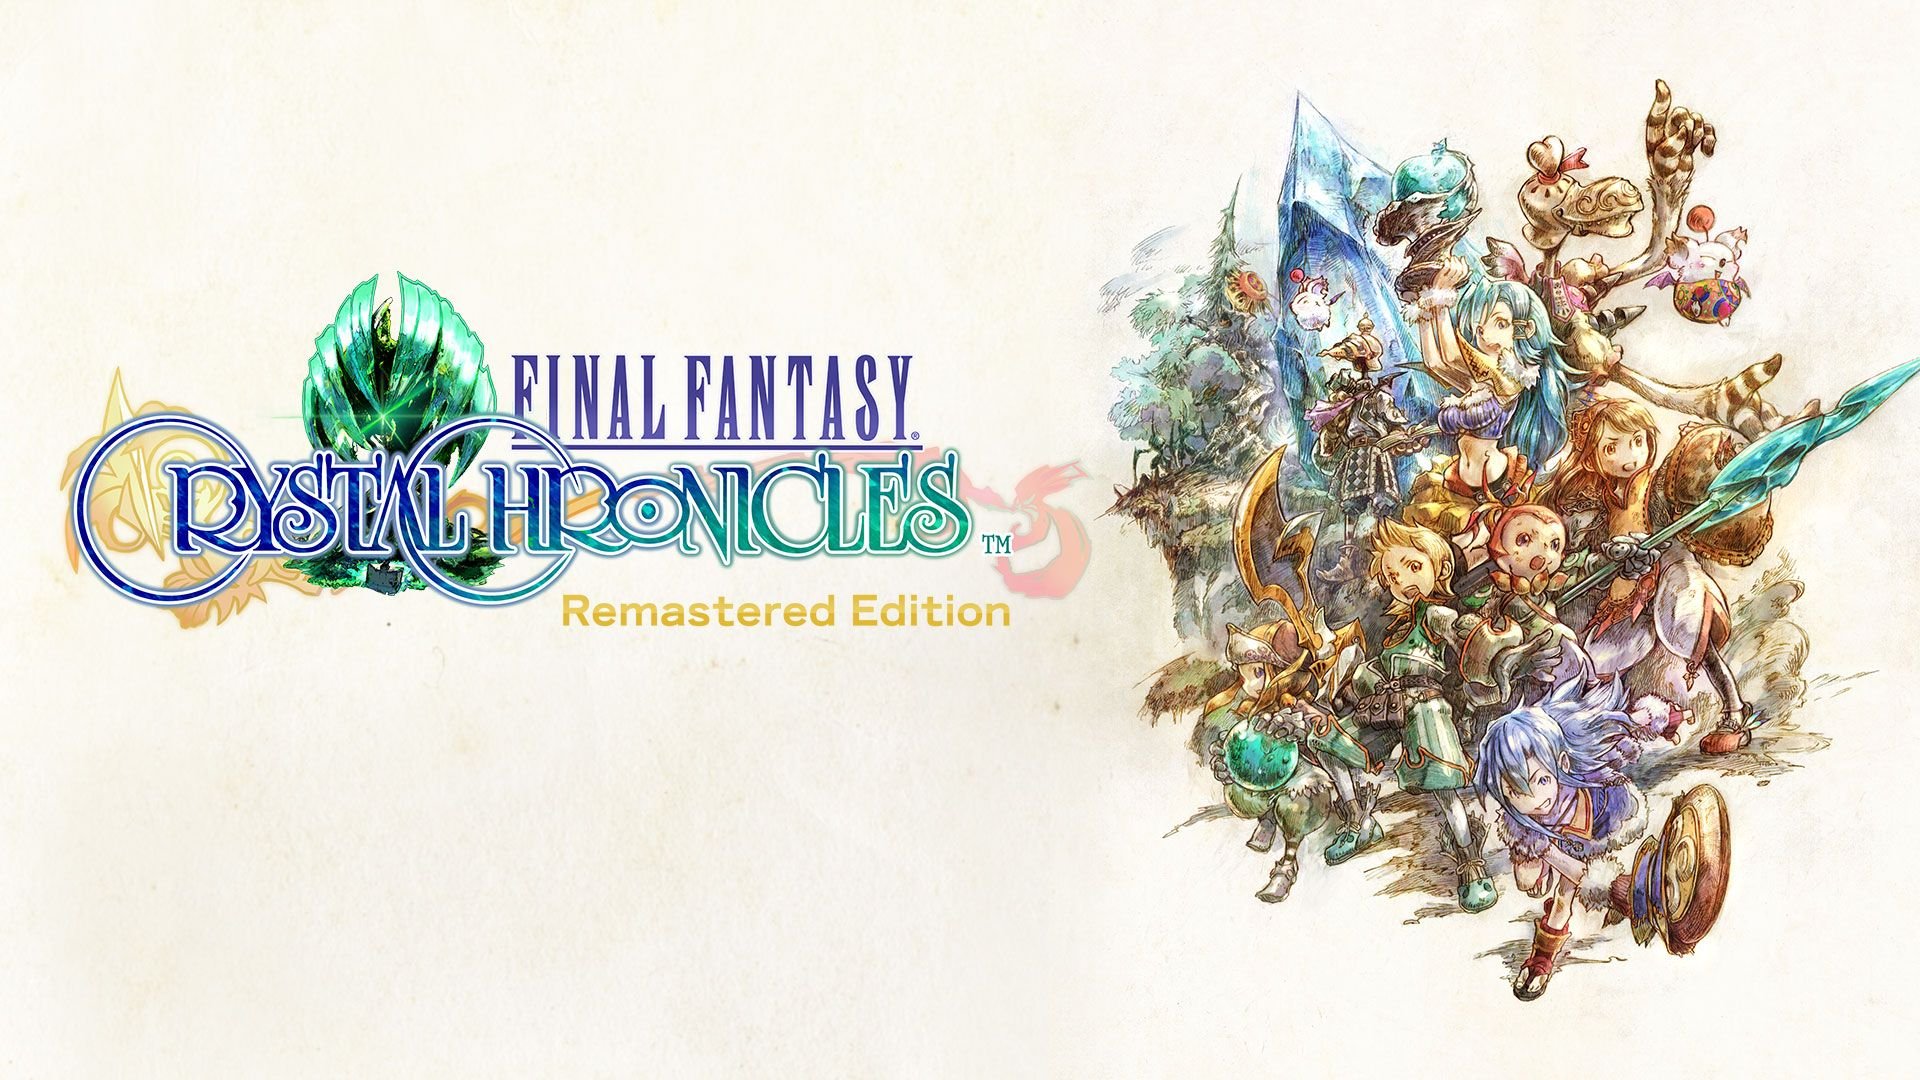 FINAL FANTASY CRYSTAL CHRONICLES Remastered Edition v1.0.1 NSP XCI NSZ For Nintendo Switch